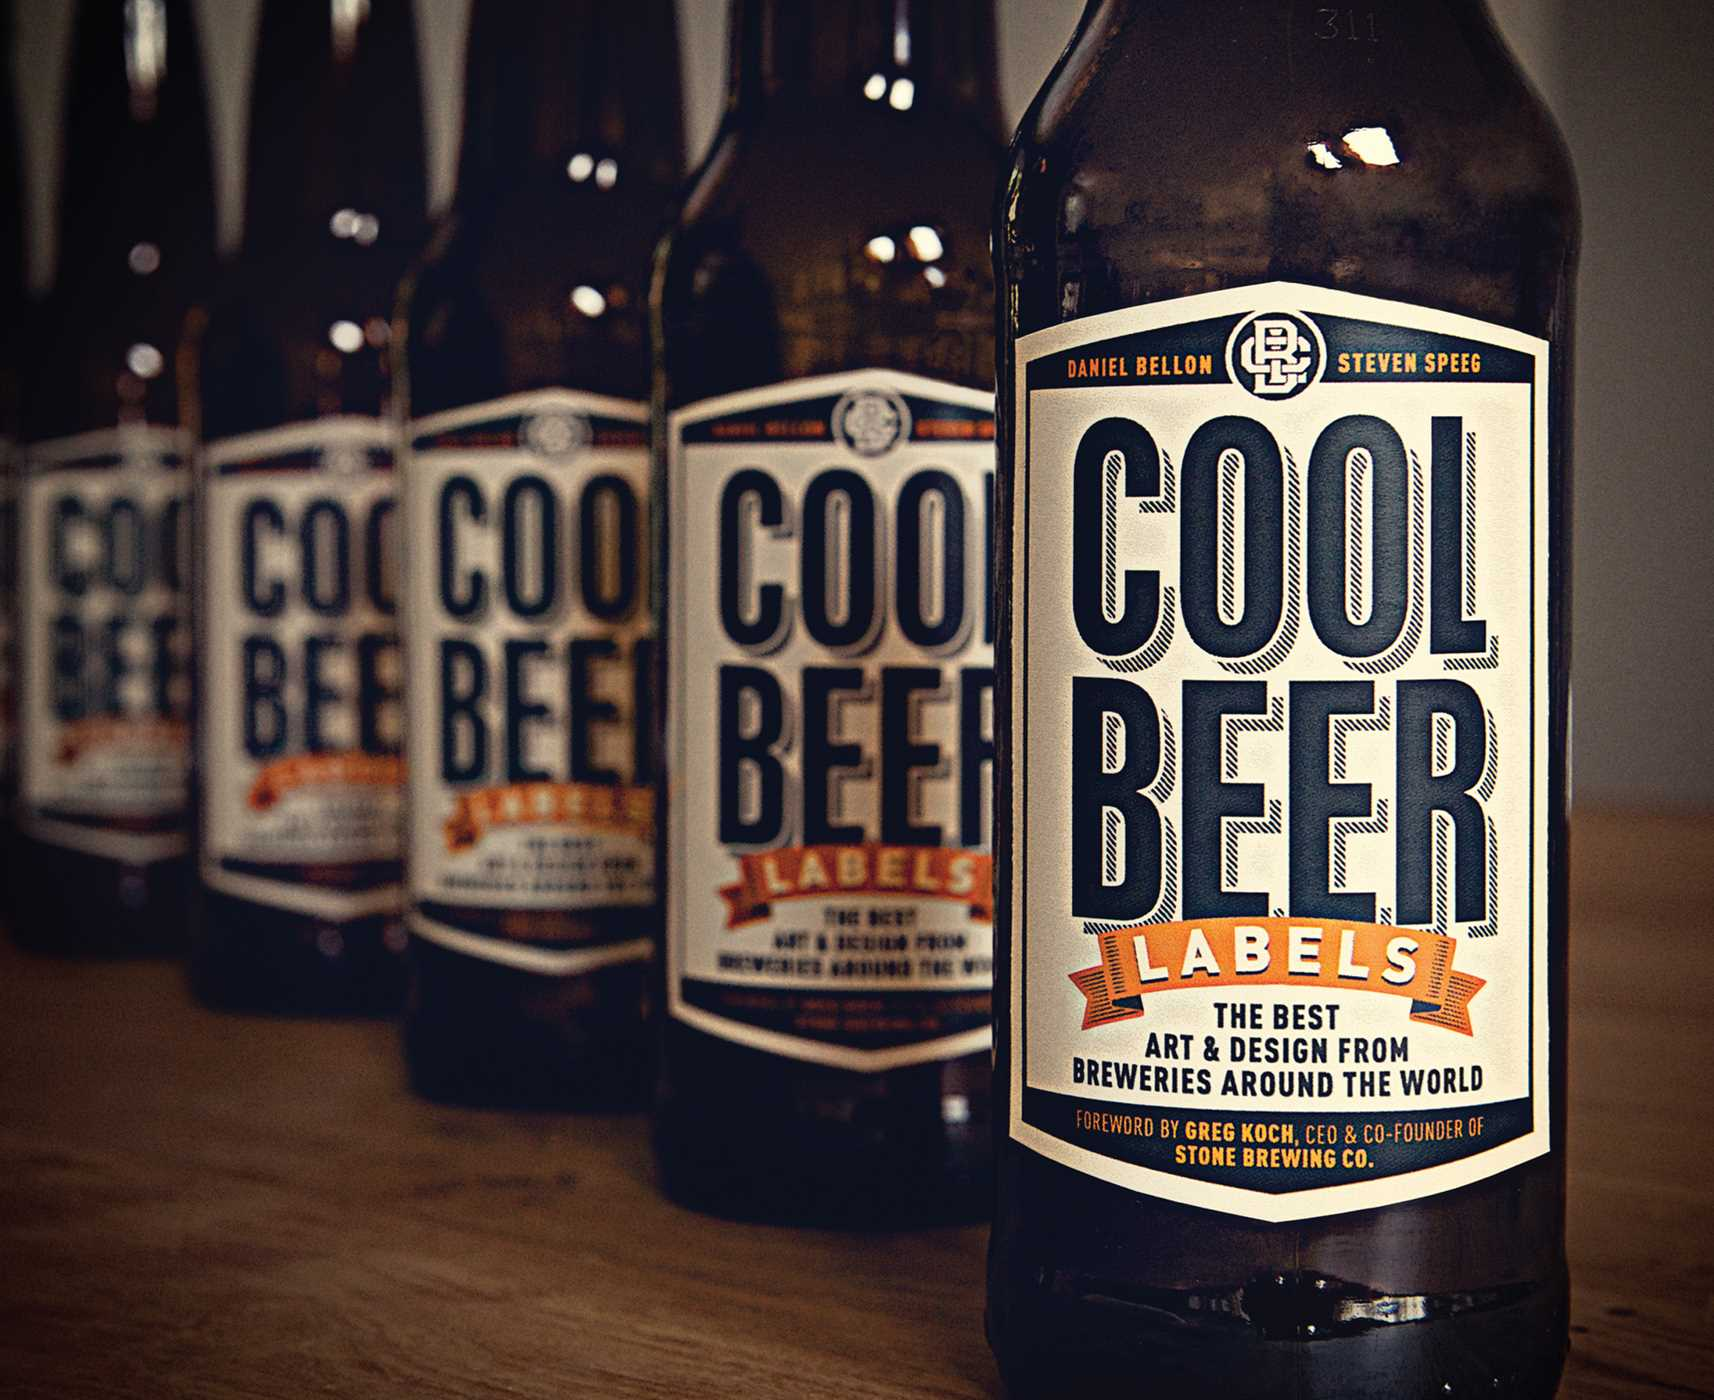 Cool Beer Labels The Best Art & Design from Breweries Around the World